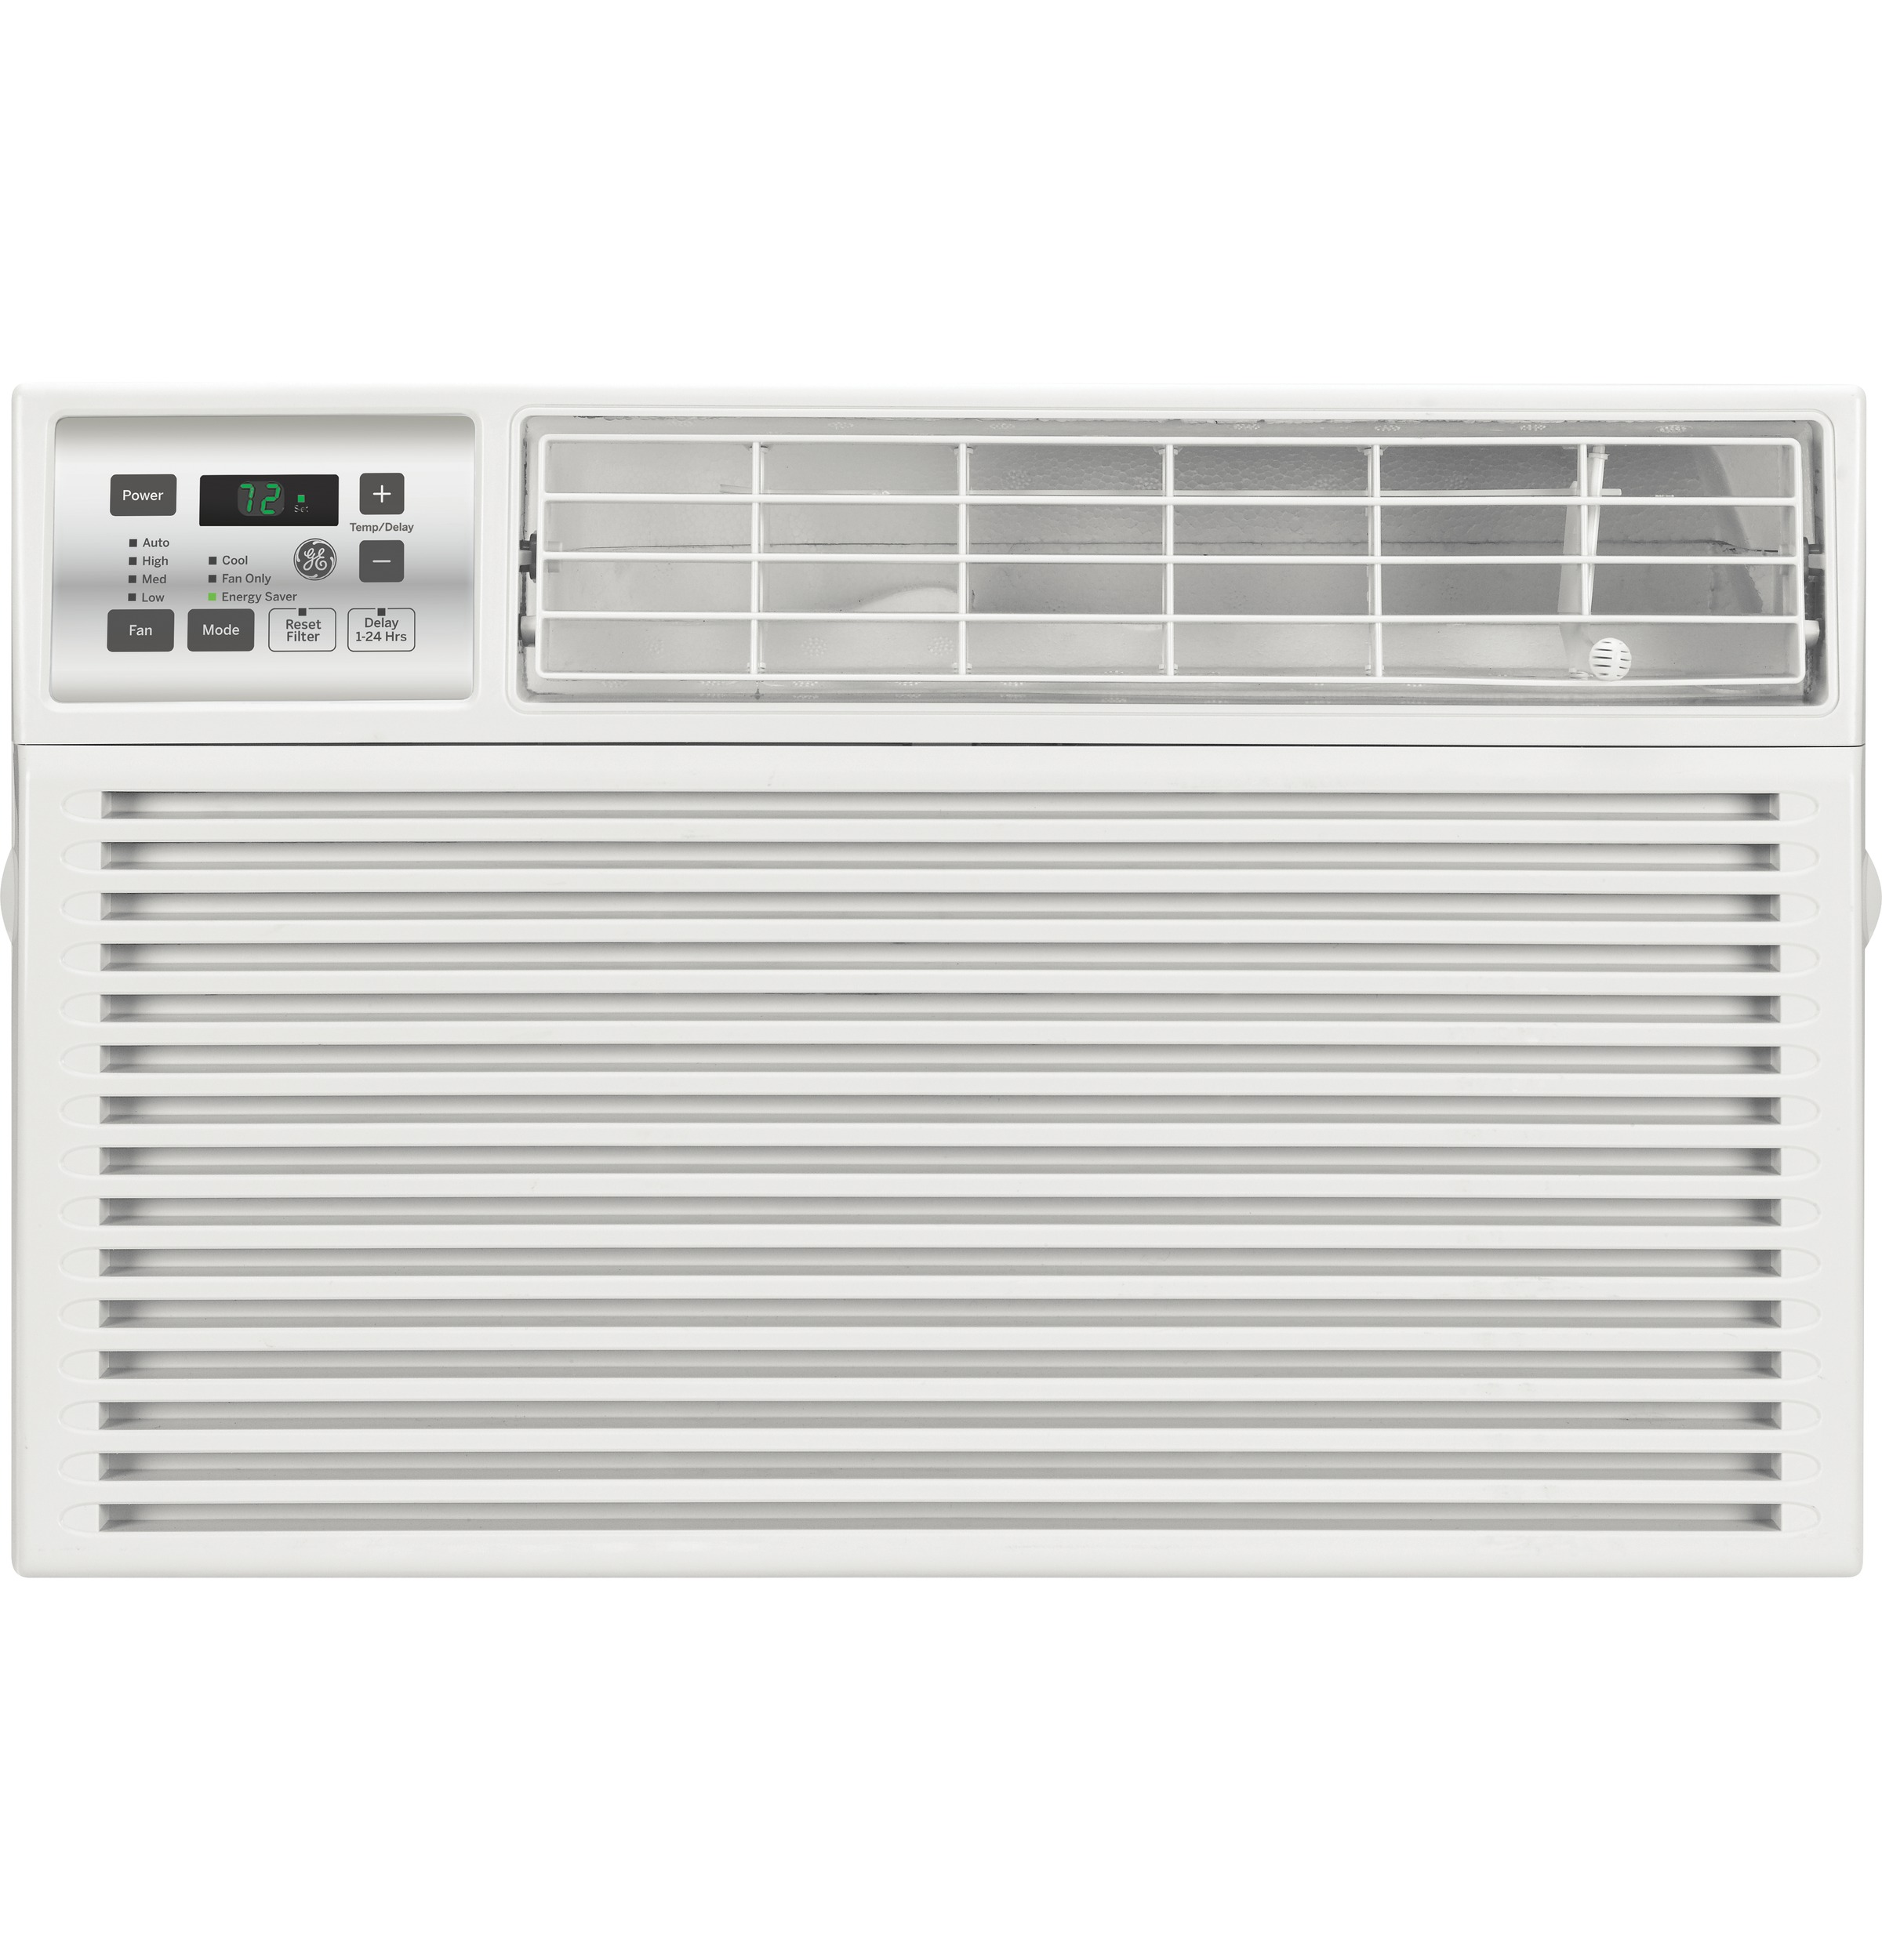 GE 10,000 BTU AIR CONDITIONER WITH REMOTE, AEW10AX